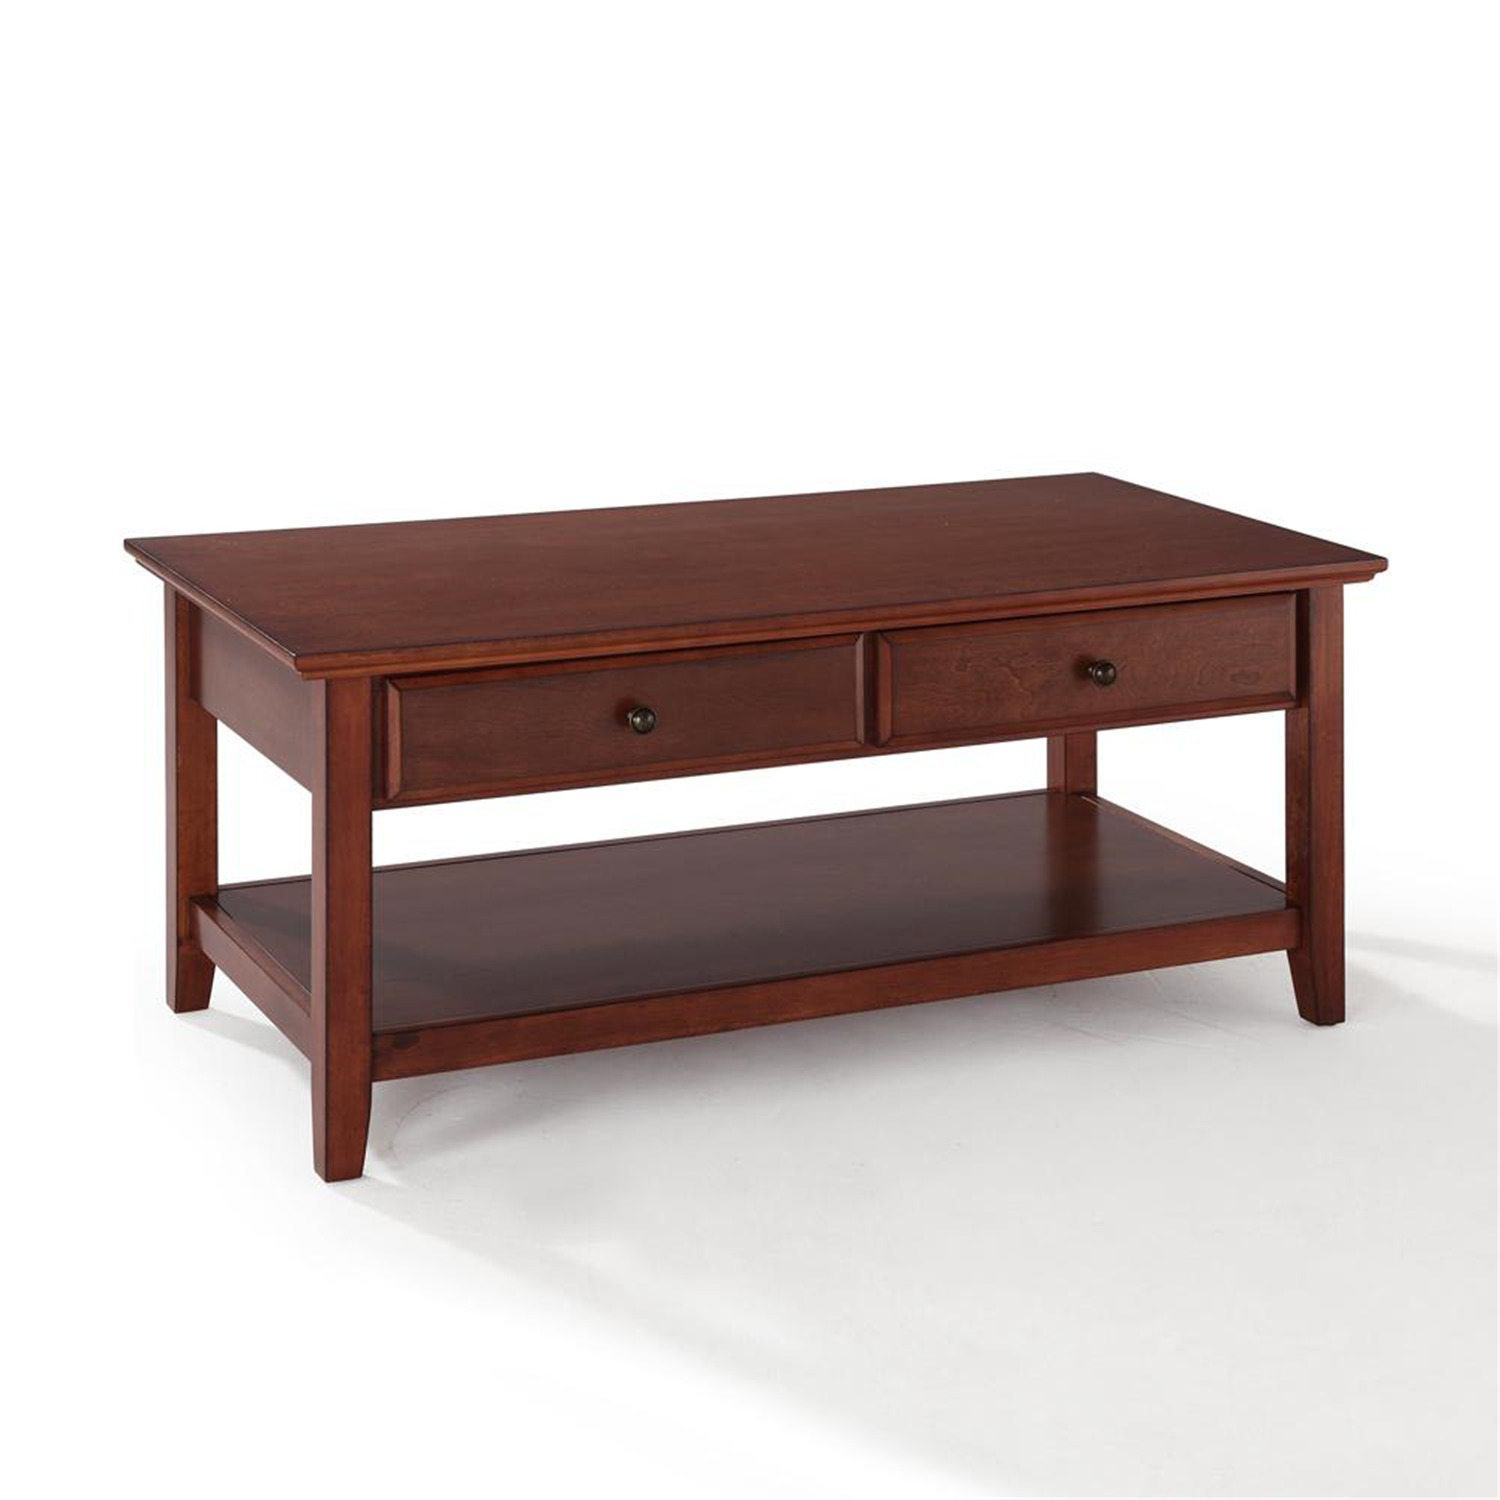 Coffee Table With Drawers: Crosley Coffee Table With Storage Drawers By OJ Commerce